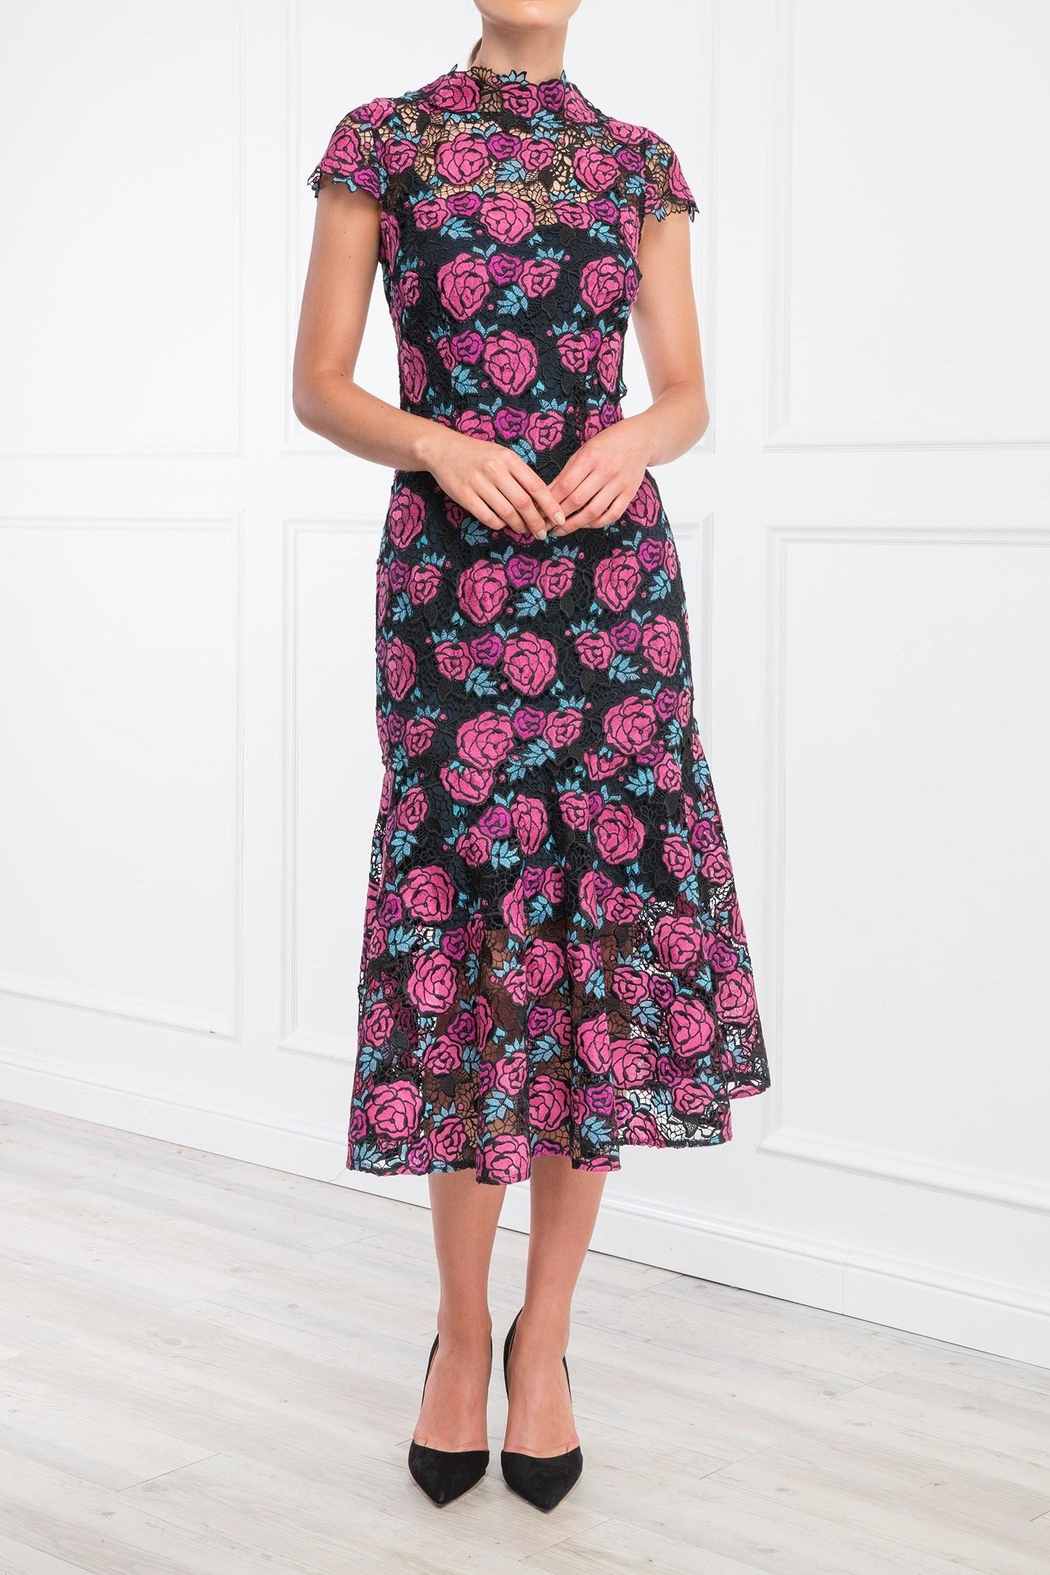 Moss and Spy Corinne Floral Dress - Main Image